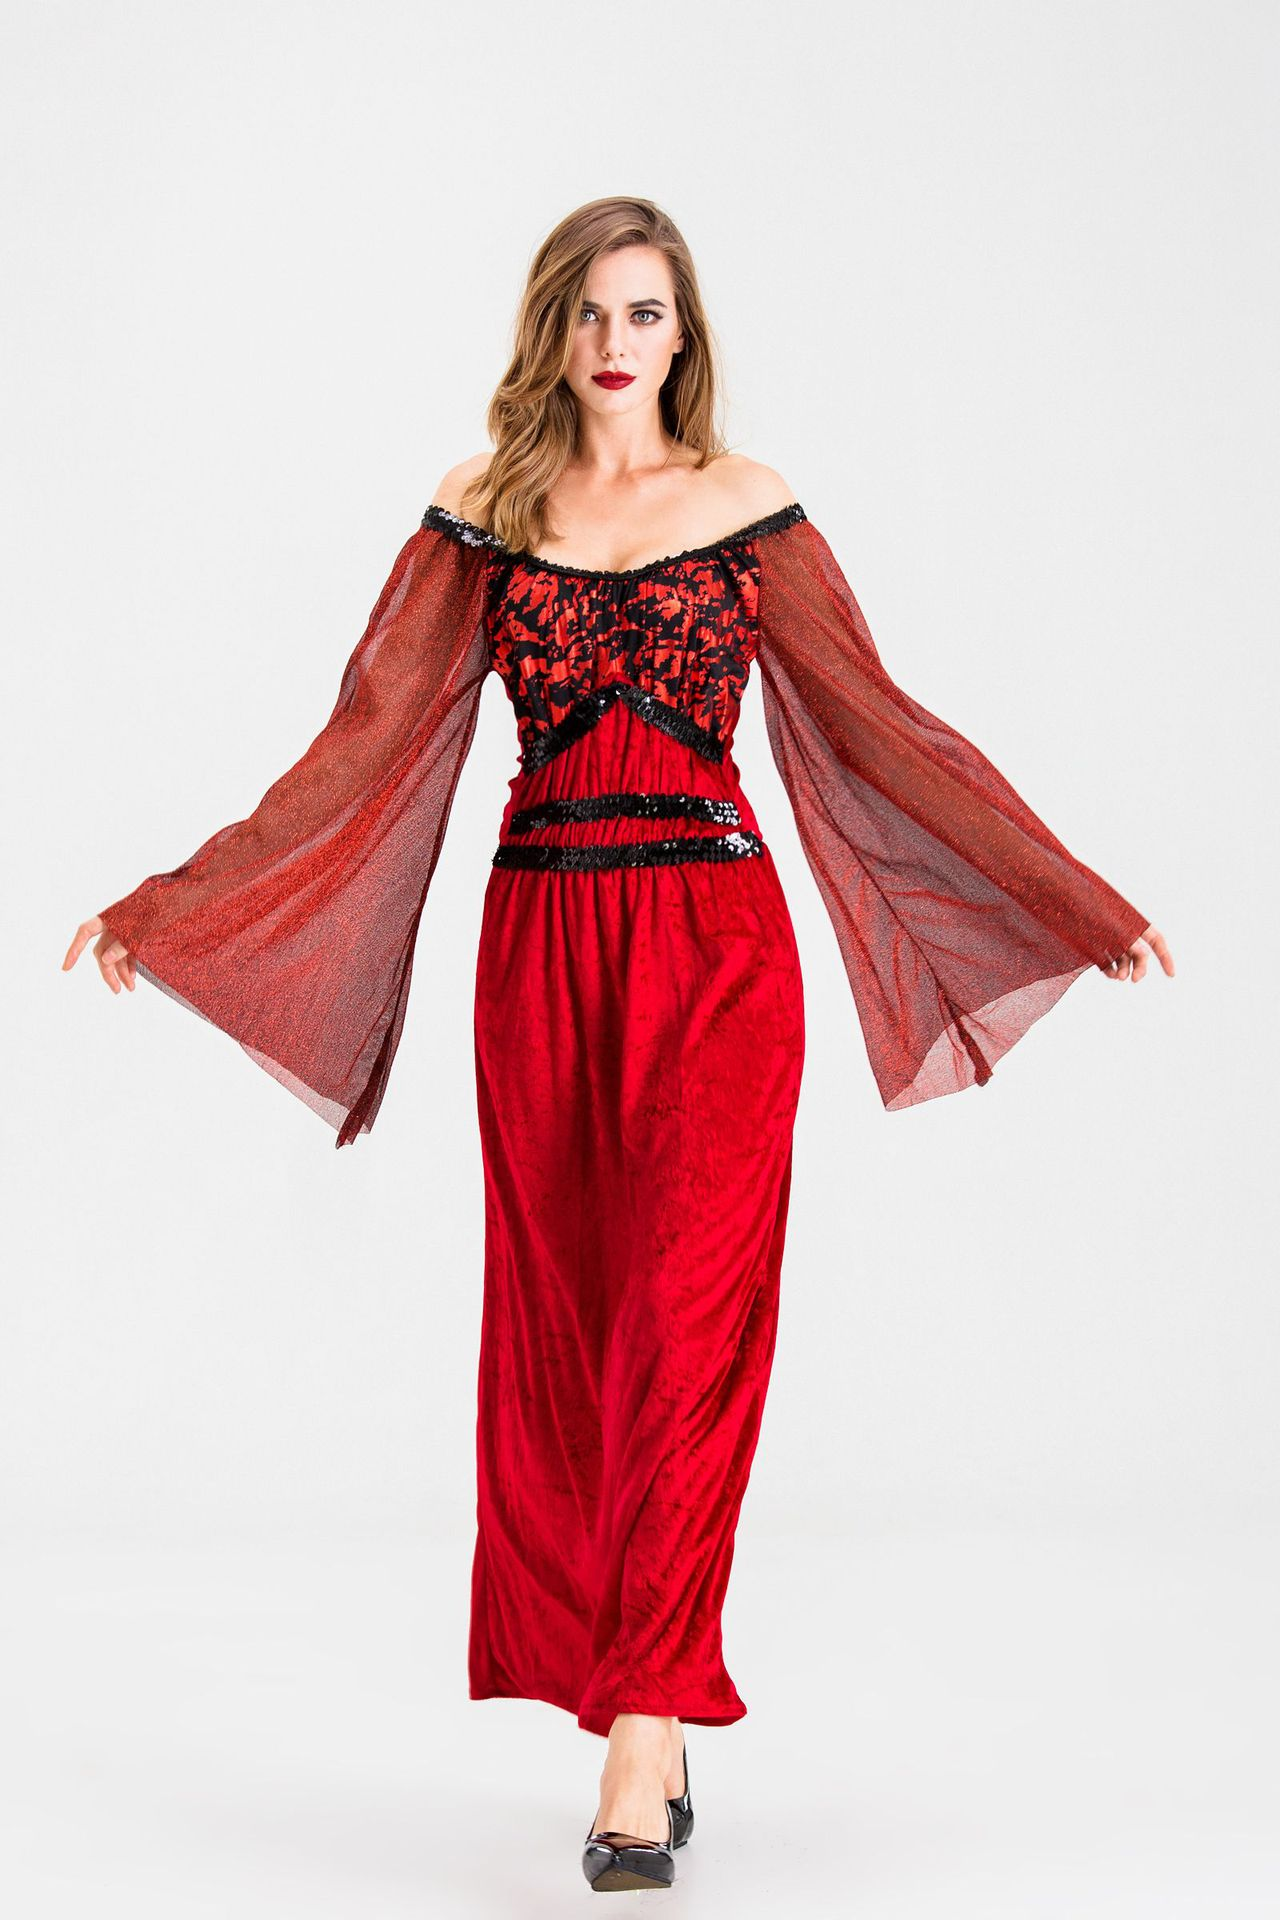 King costume demon One Shoulder Dress Halloween Costume Adult Vampire Costume role play costume female red